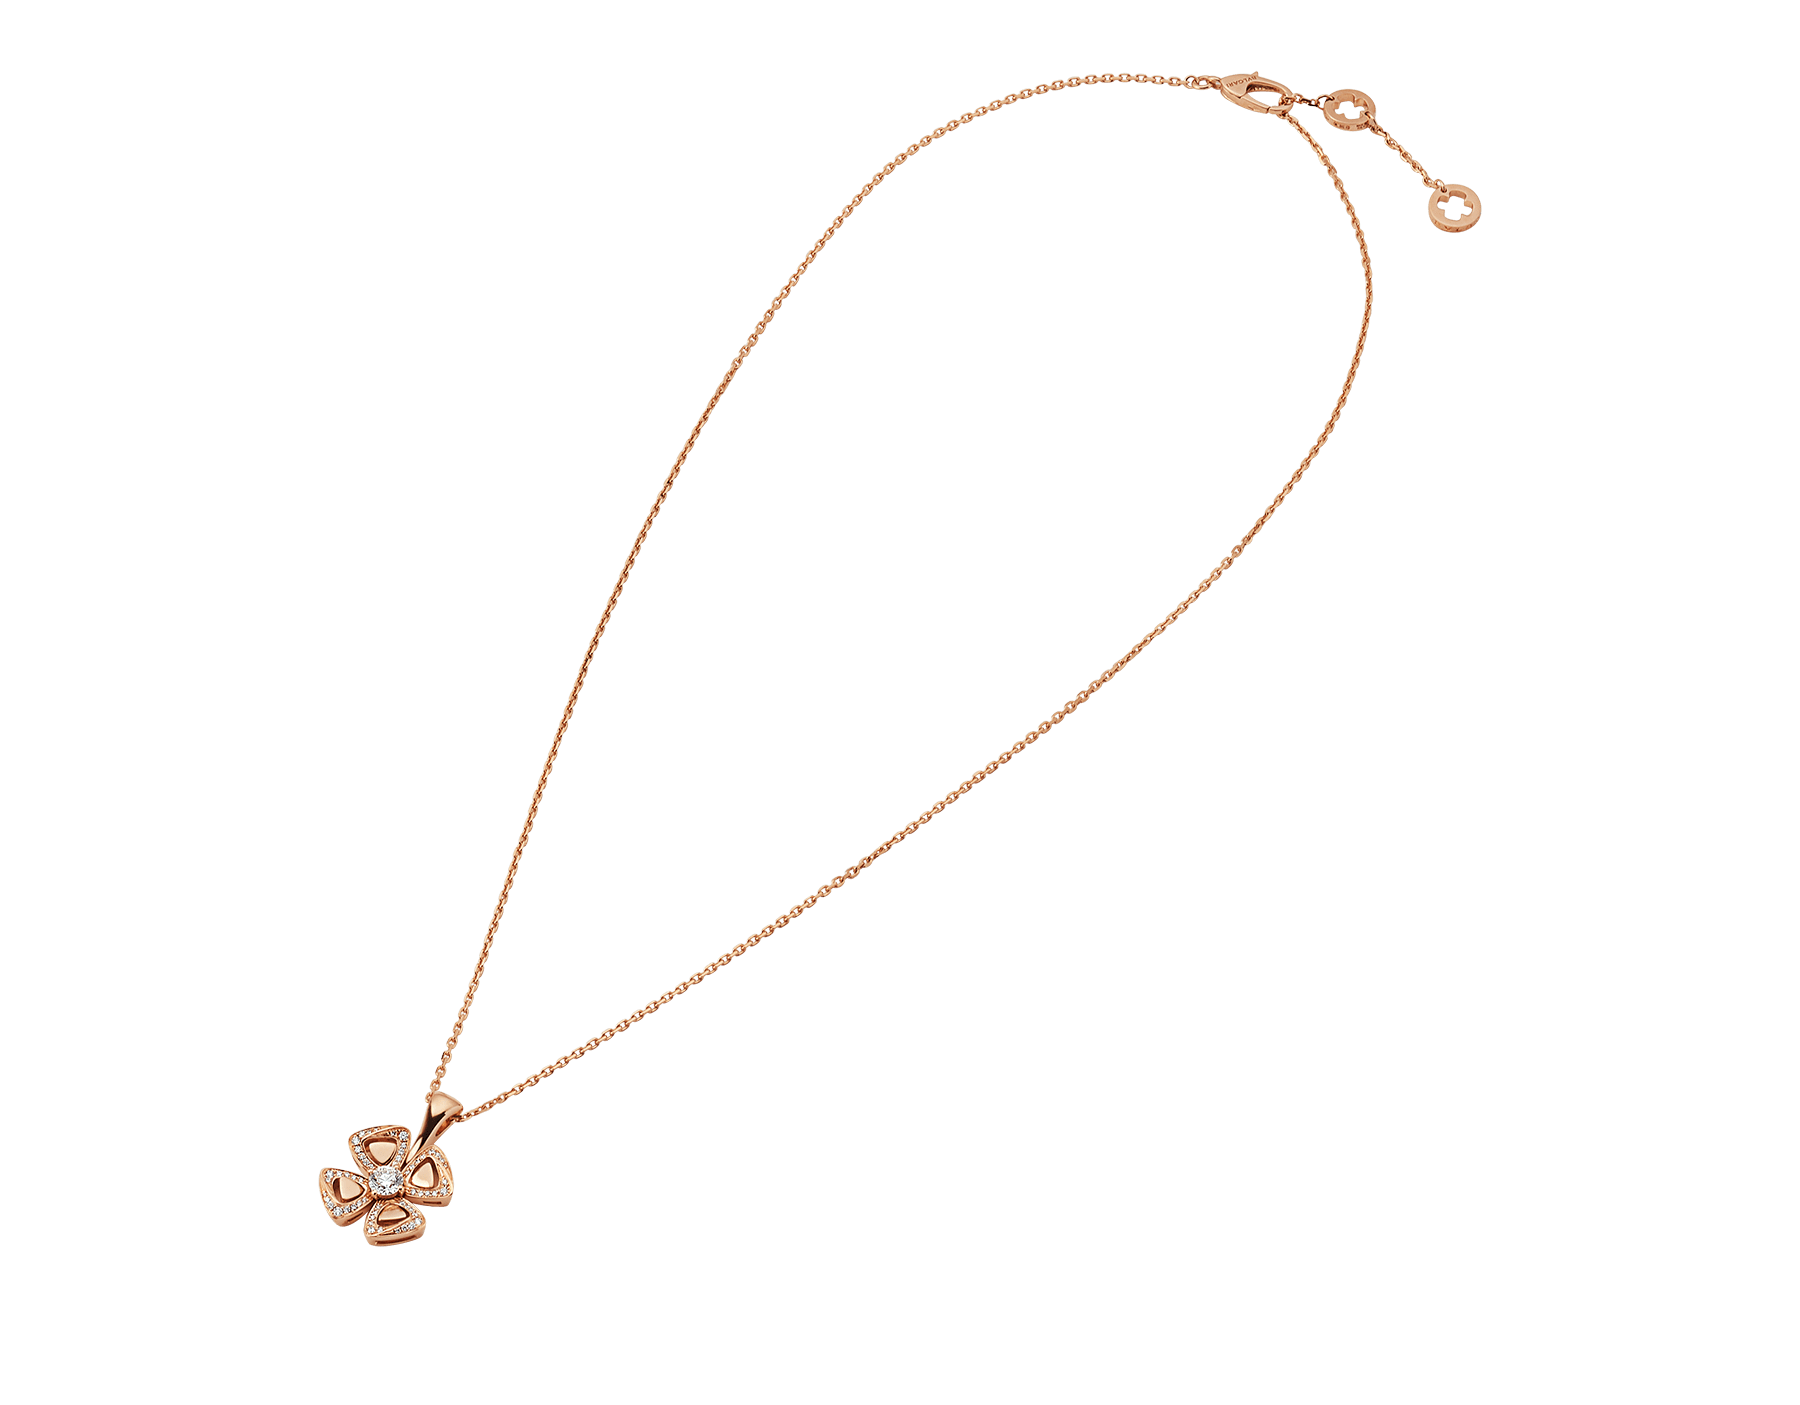 Fiorever 18 kt rose gold necklace set with a central diamond (0.20 ct) and pavé diamonds (0.18 ct) 356223 image 2